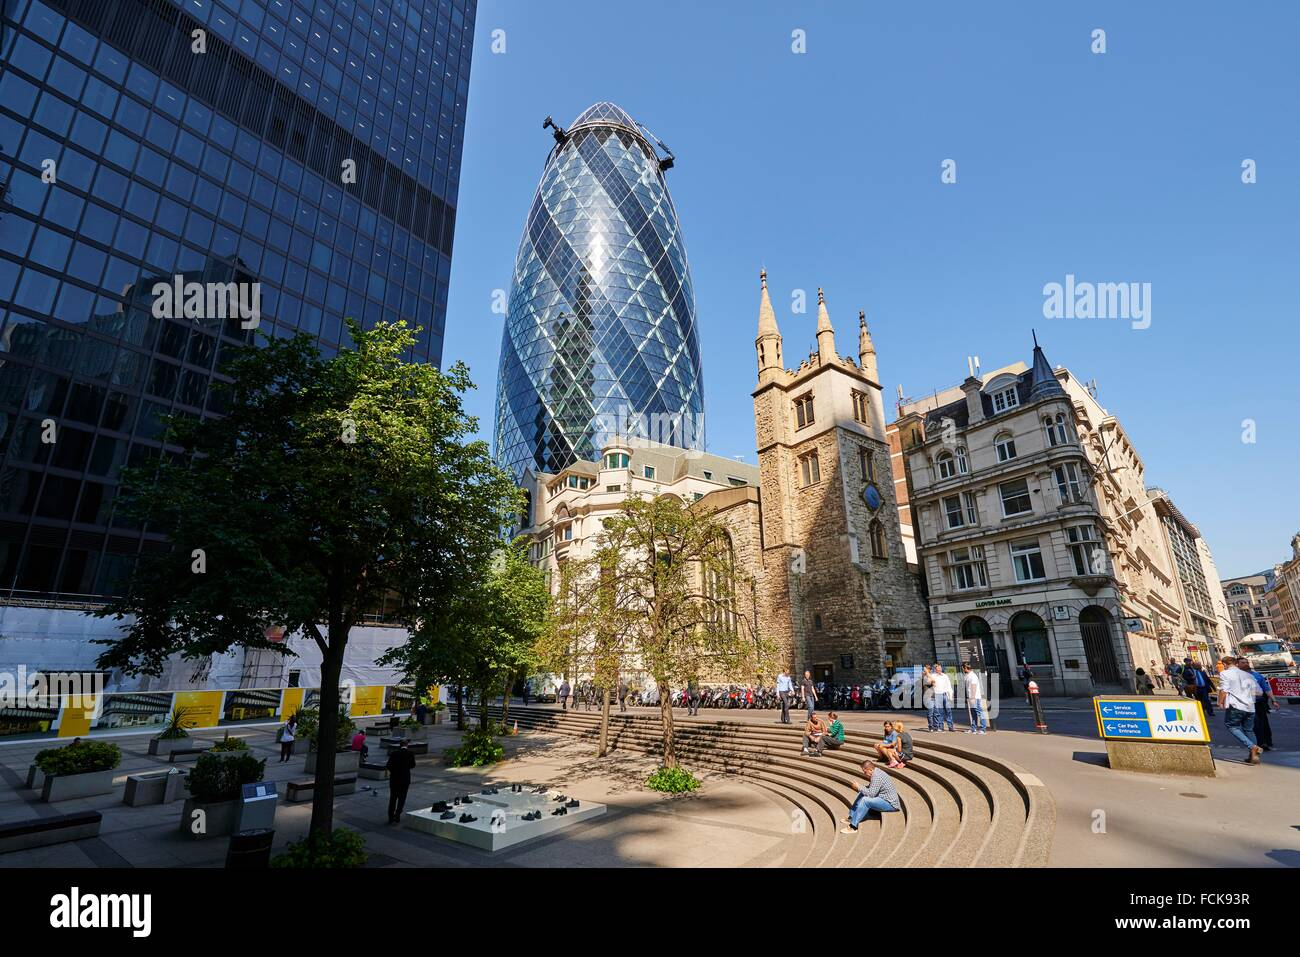 Church of St Andrew Undershaft and The Gherkin, London, United Kingdom, Europe. - Stock Image